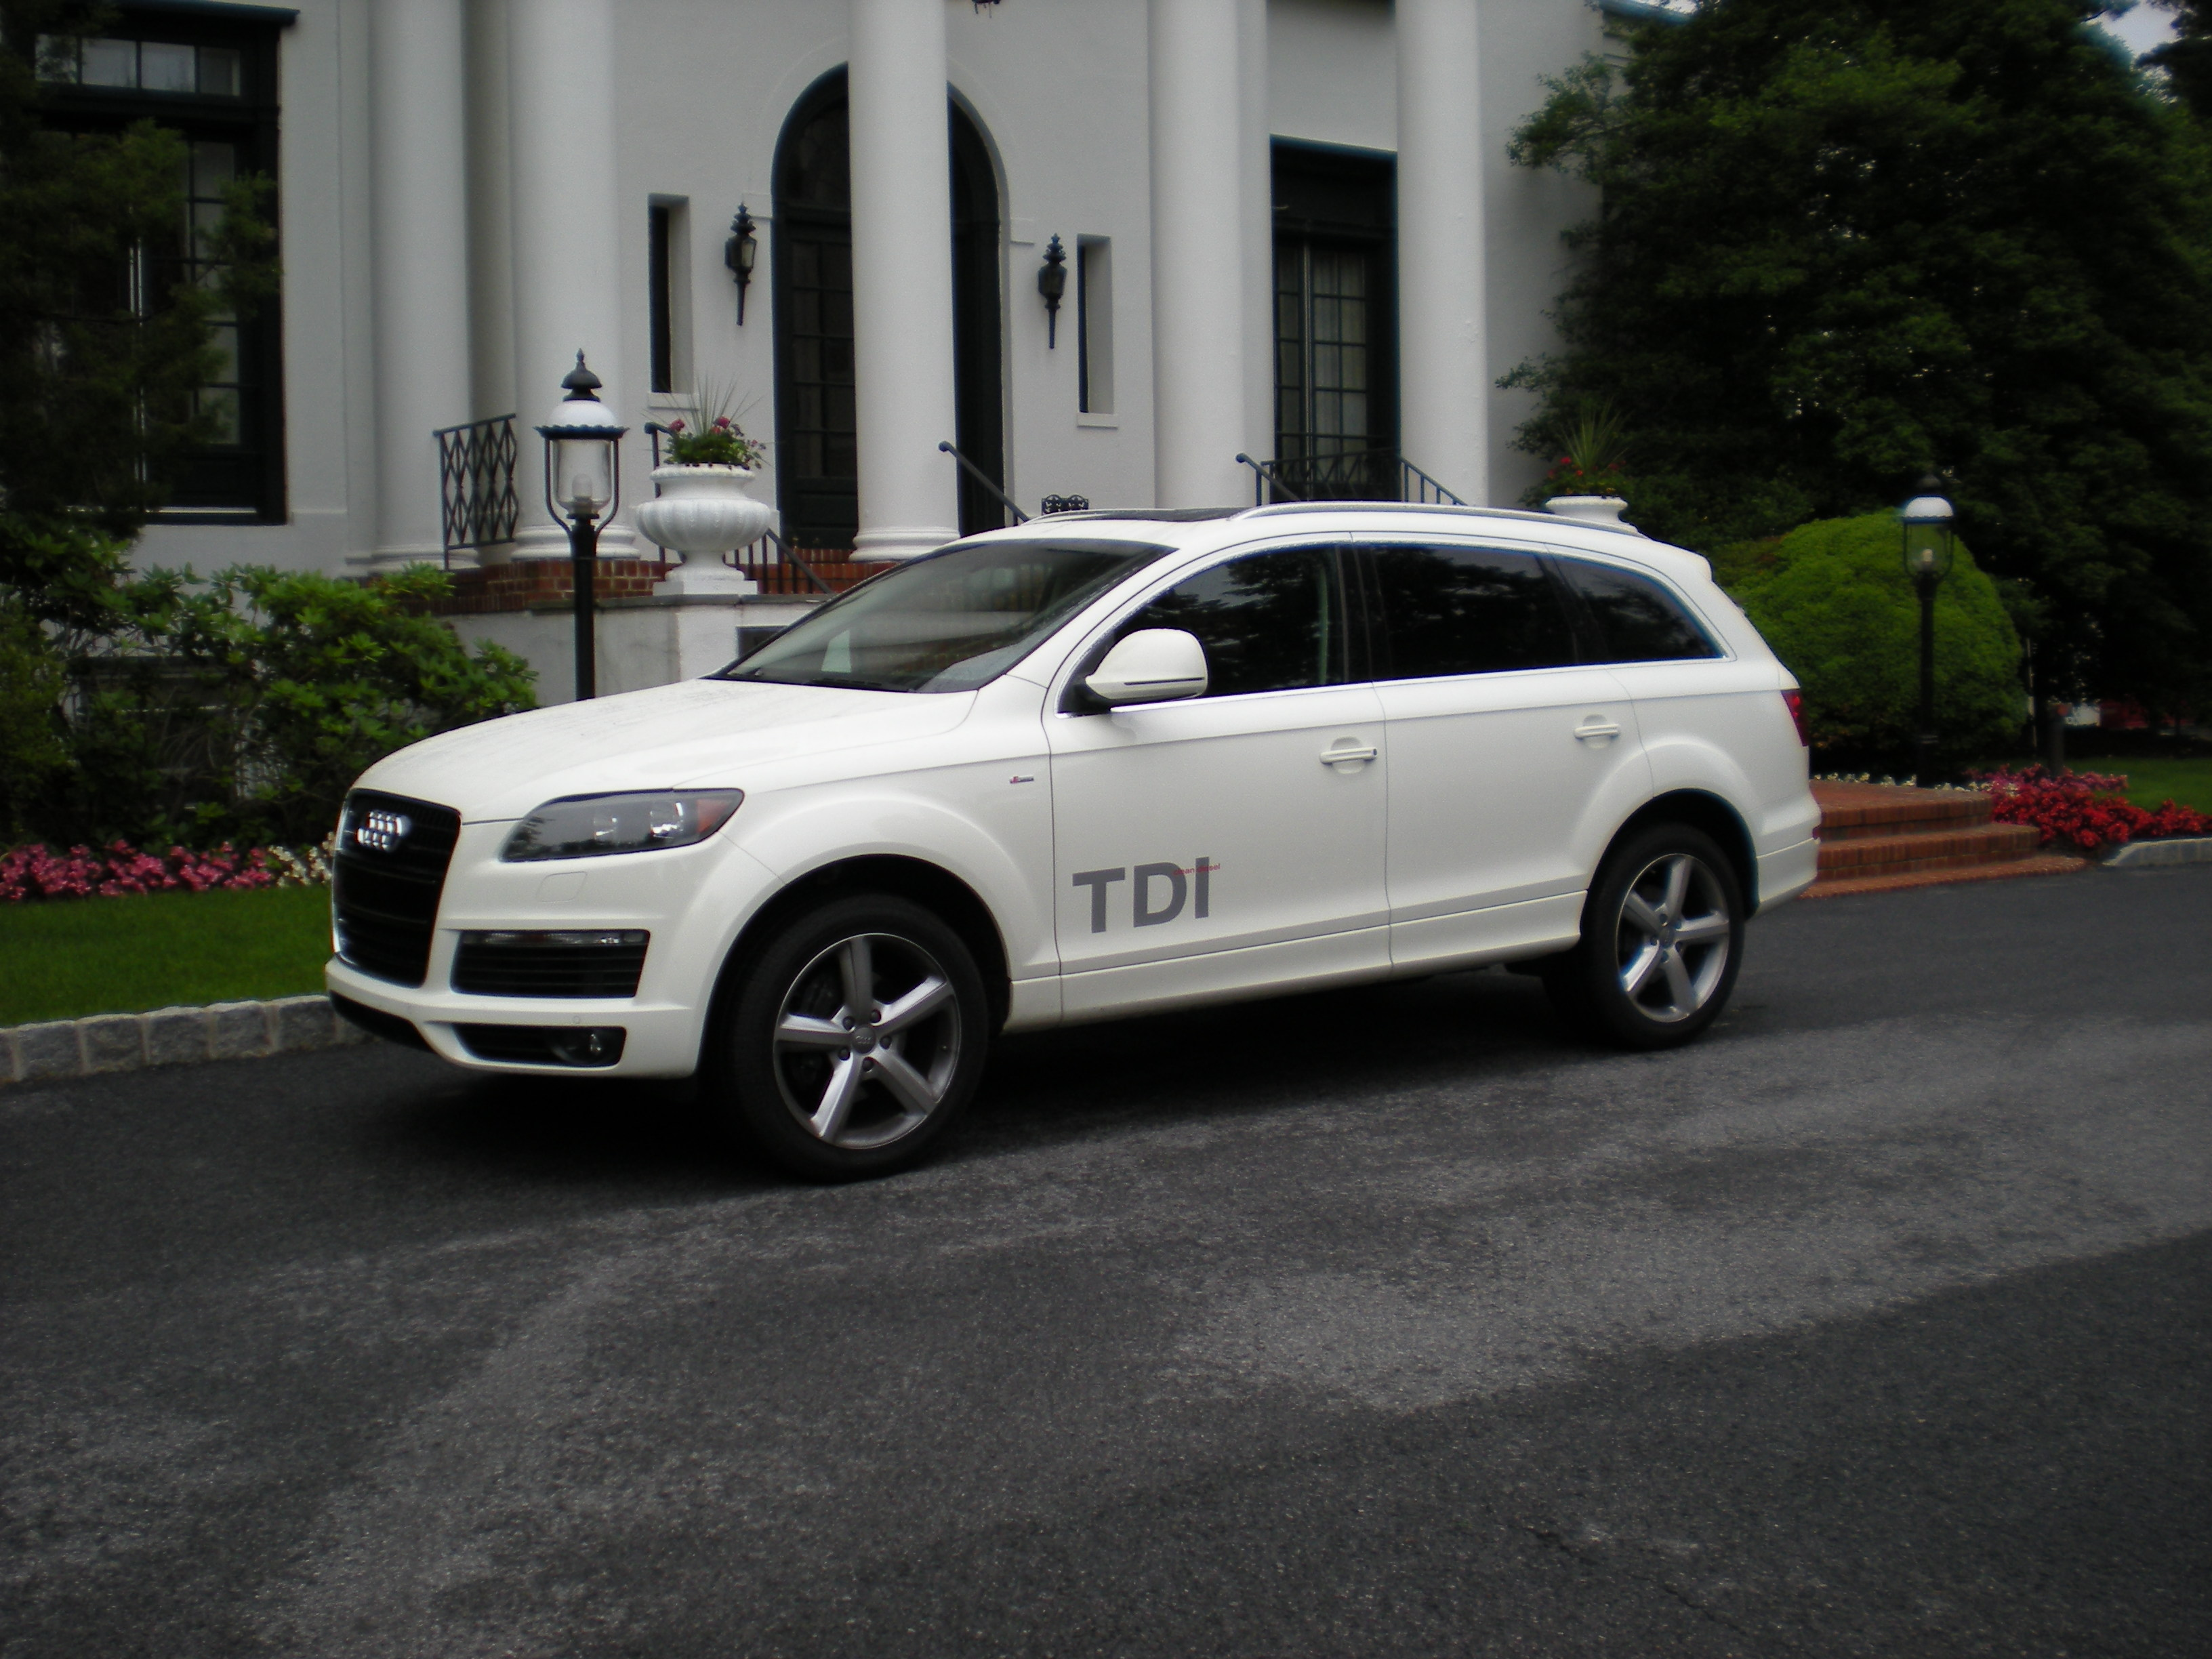 specifications details quattro and technical audi tdi data diesel